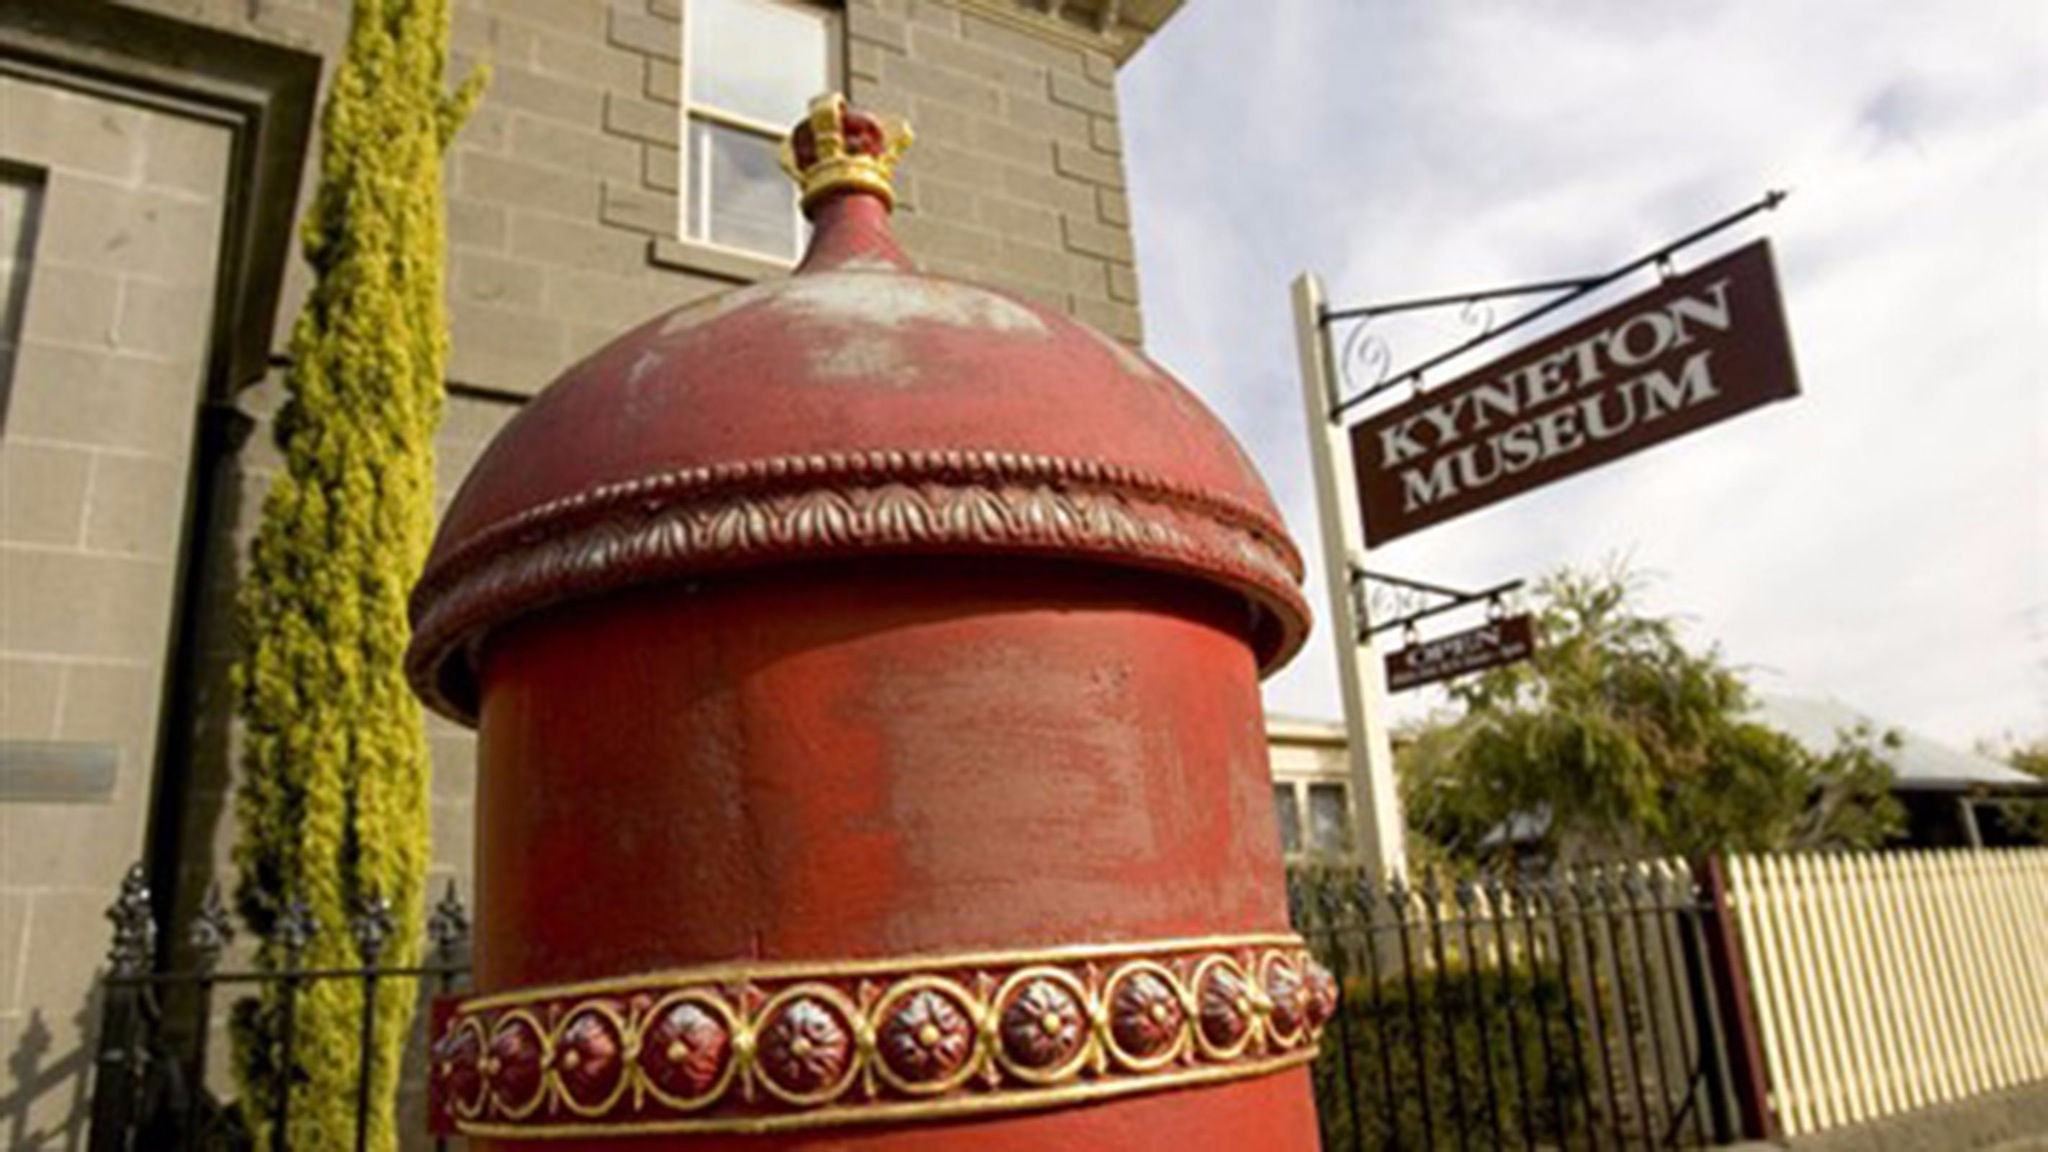 Kyneton Visitor Information Centre